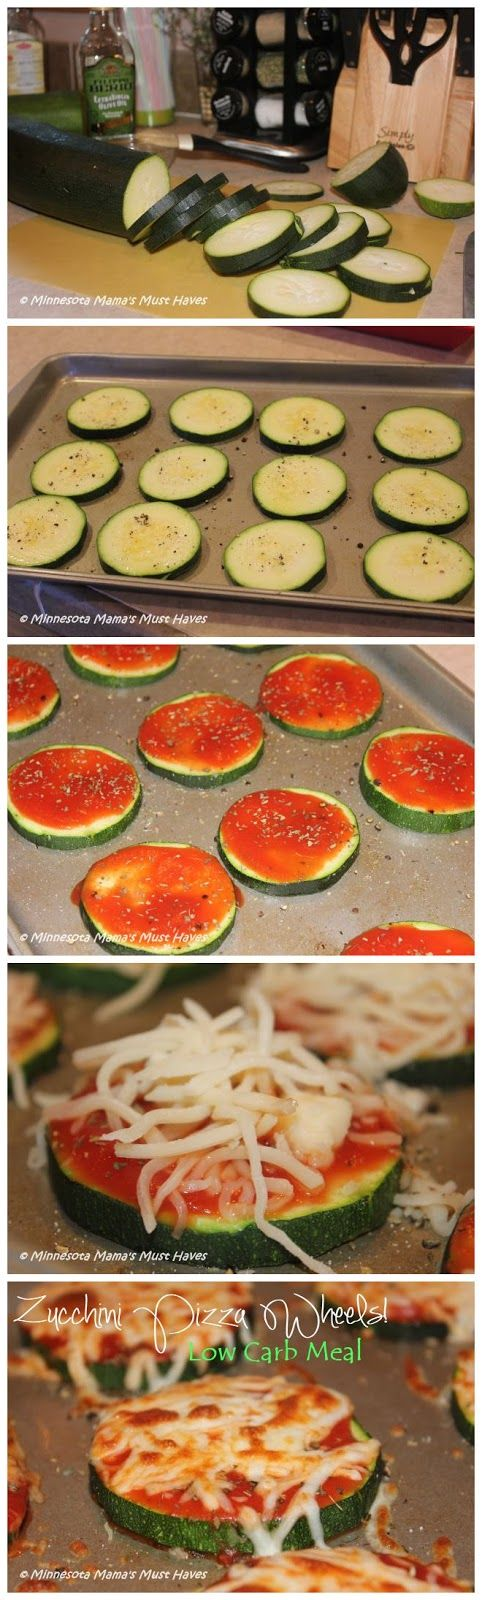 cookglee recipe pictures: Zucchini Pizza Wheels